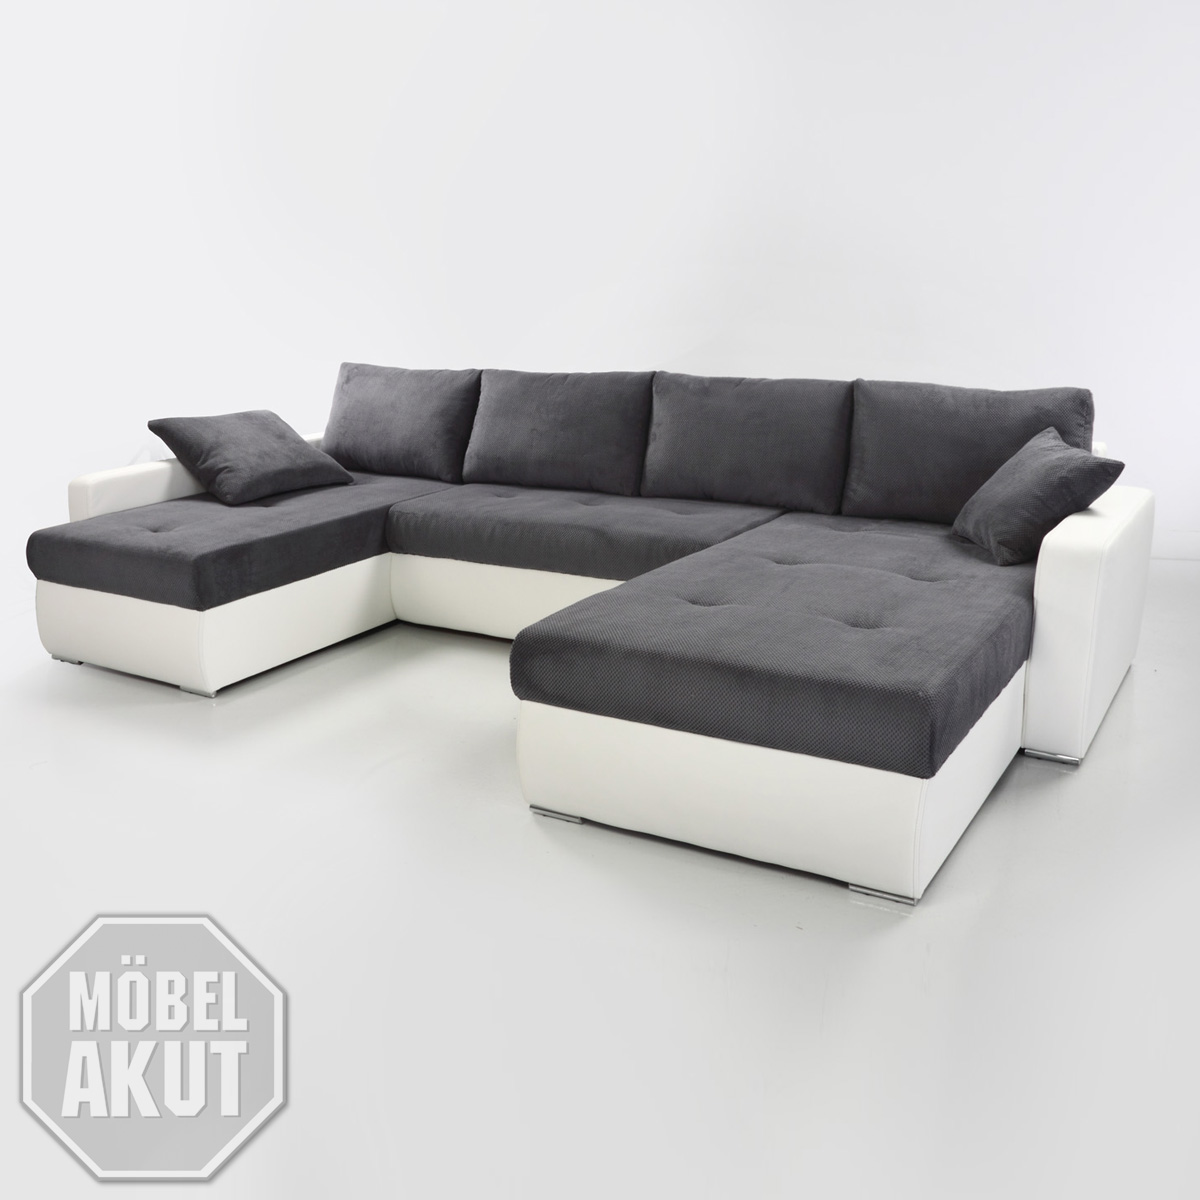 wohnlandschaft stella ecksofa sofa wei dunkel grau bettfunktion bettkasten ebay. Black Bedroom Furniture Sets. Home Design Ideas